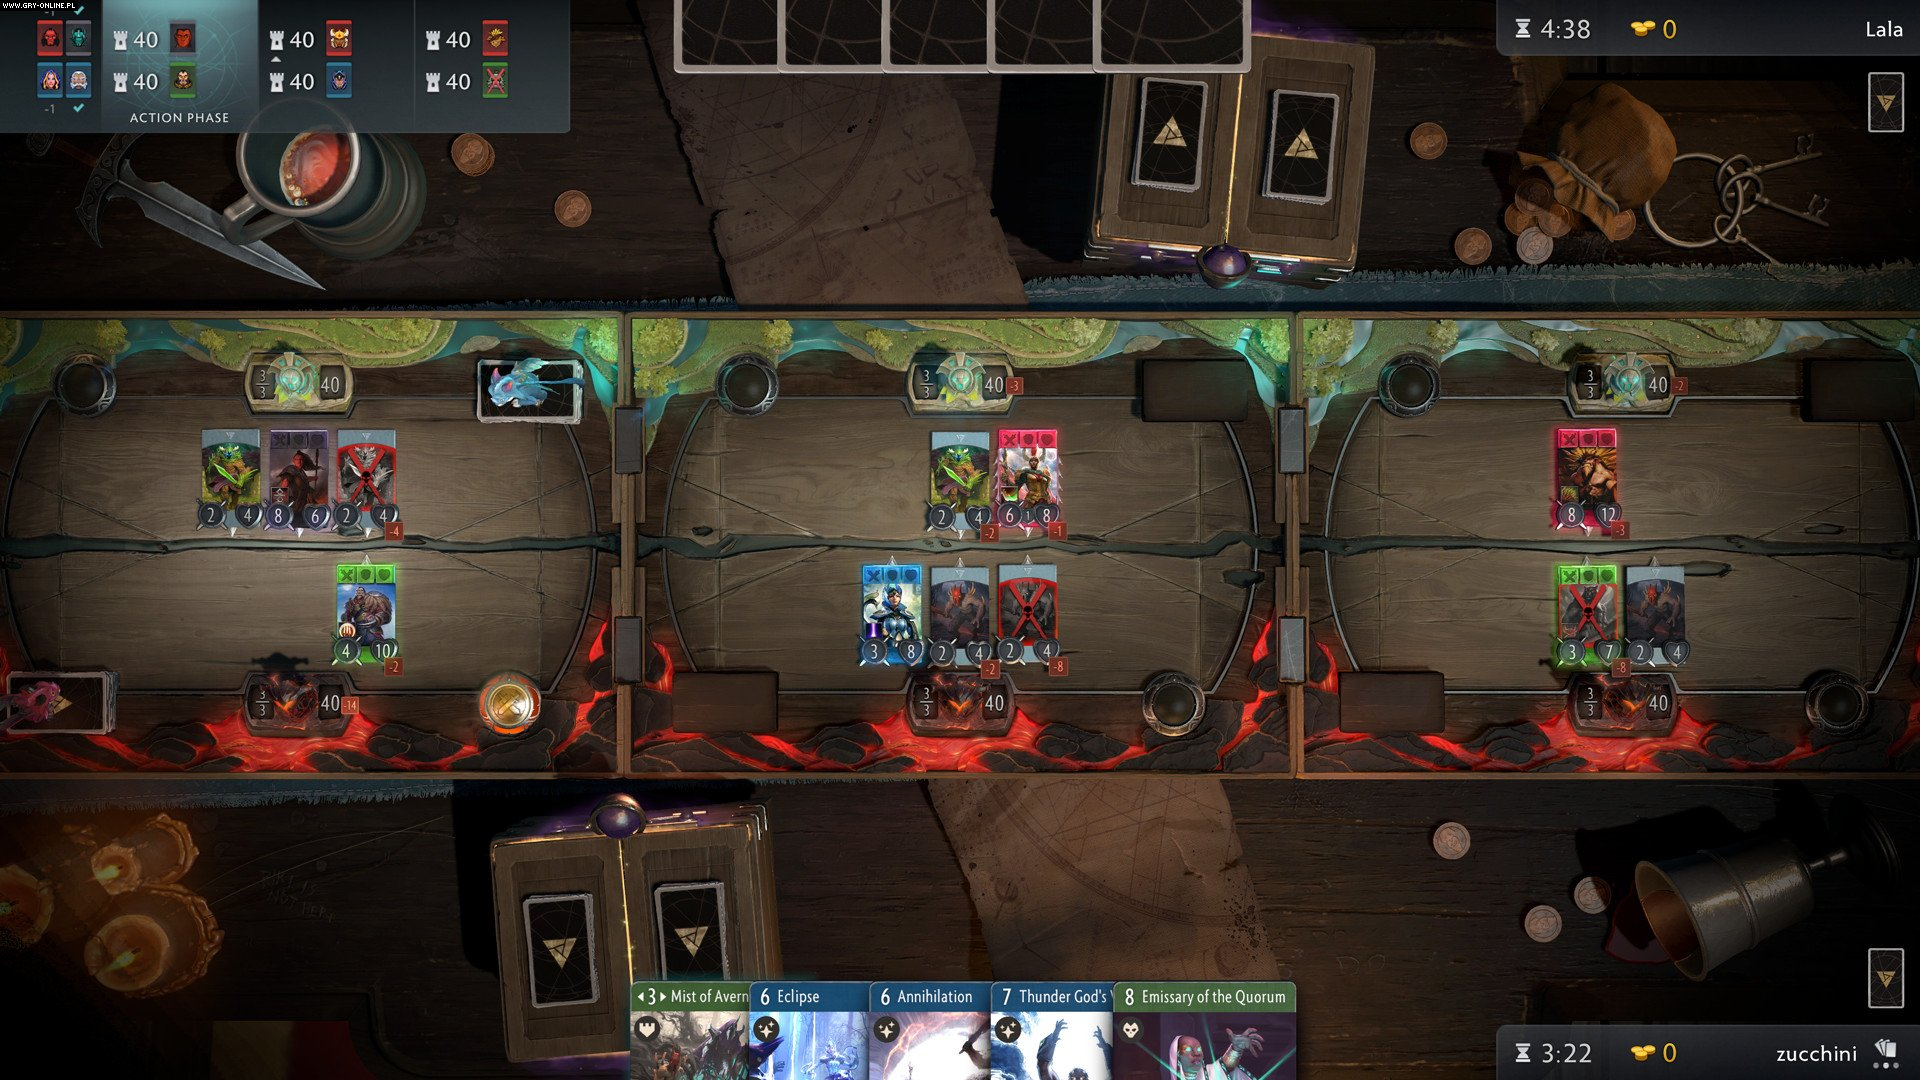 Artifact PC, AND, iOS Gry Screen 7/9, Valve Corporation